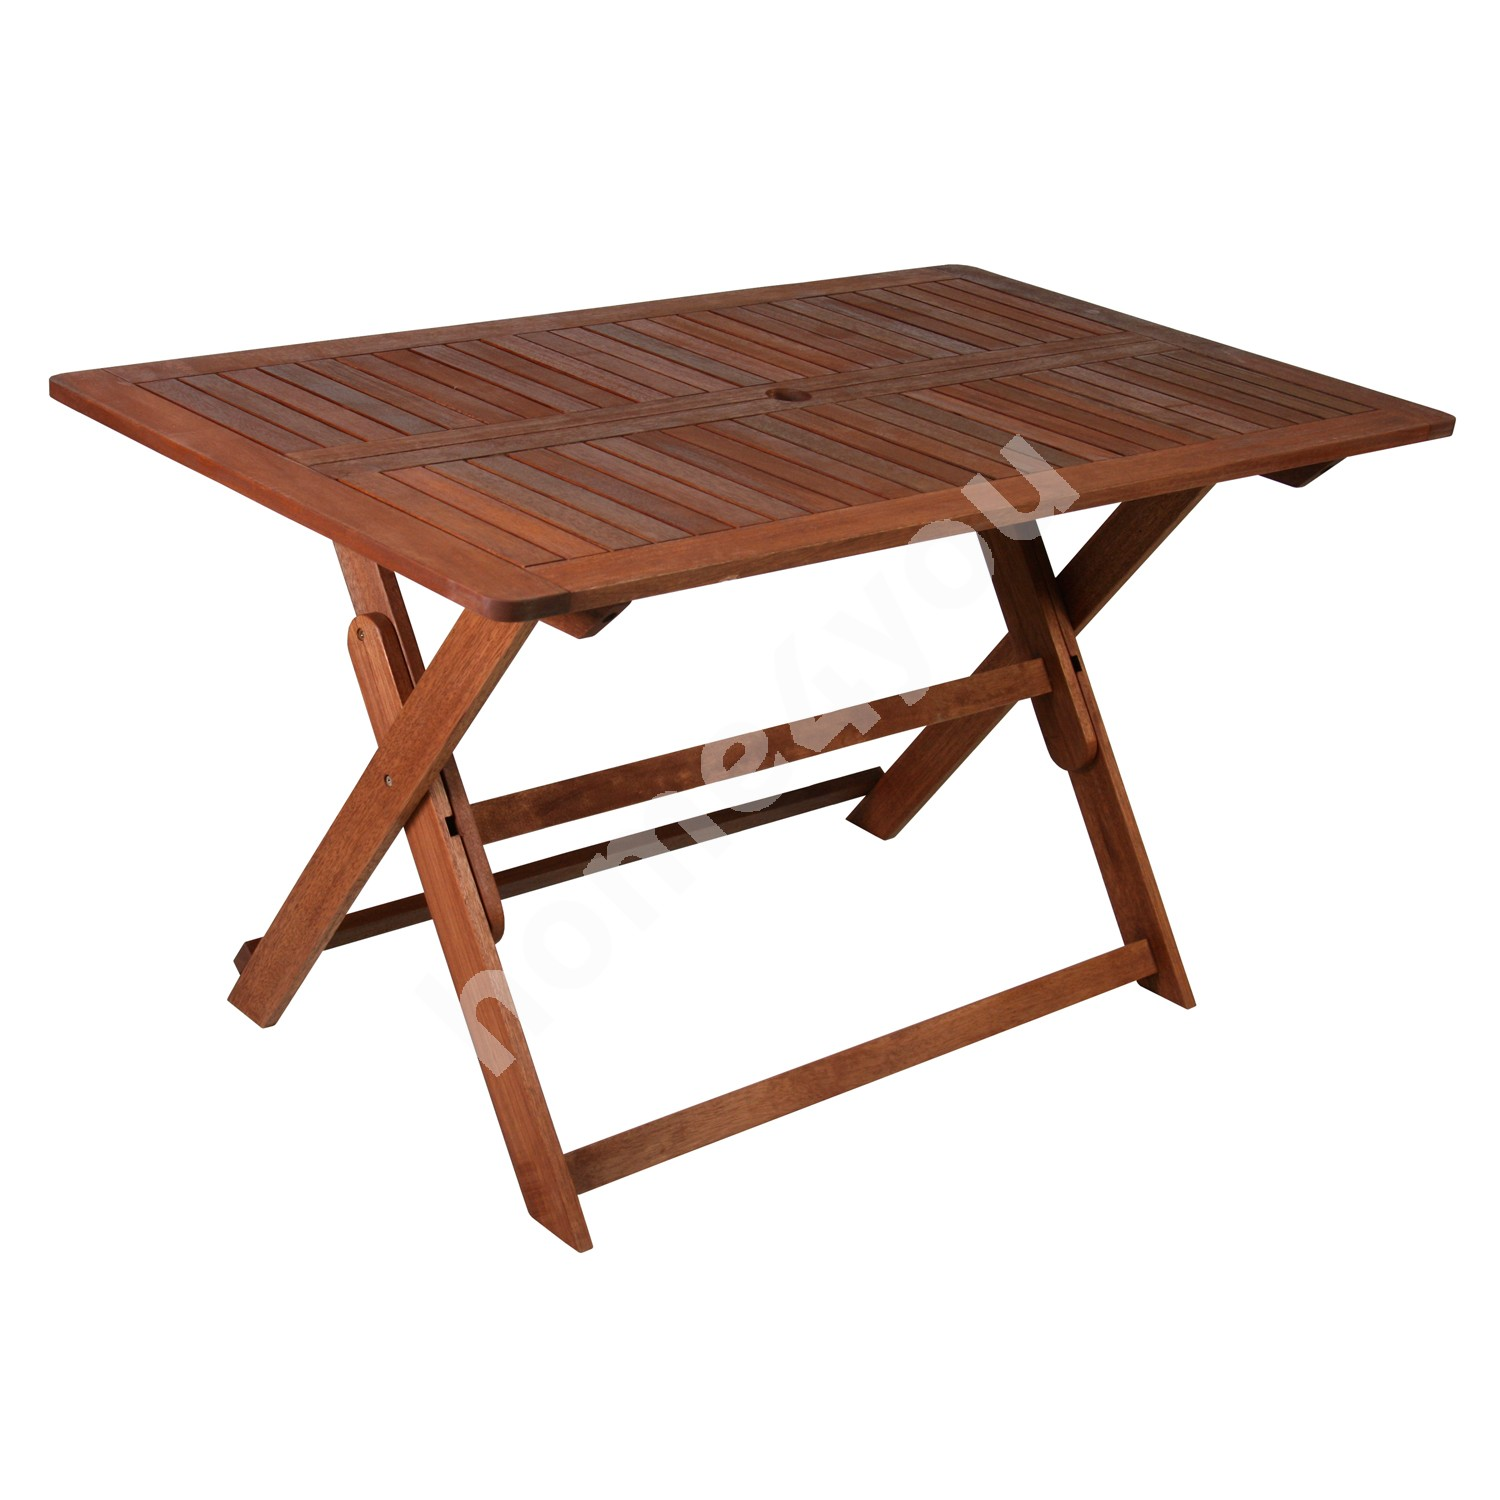 Table MODENA 135x80xH74cm, foldable, wood: meranti, finish: oiled